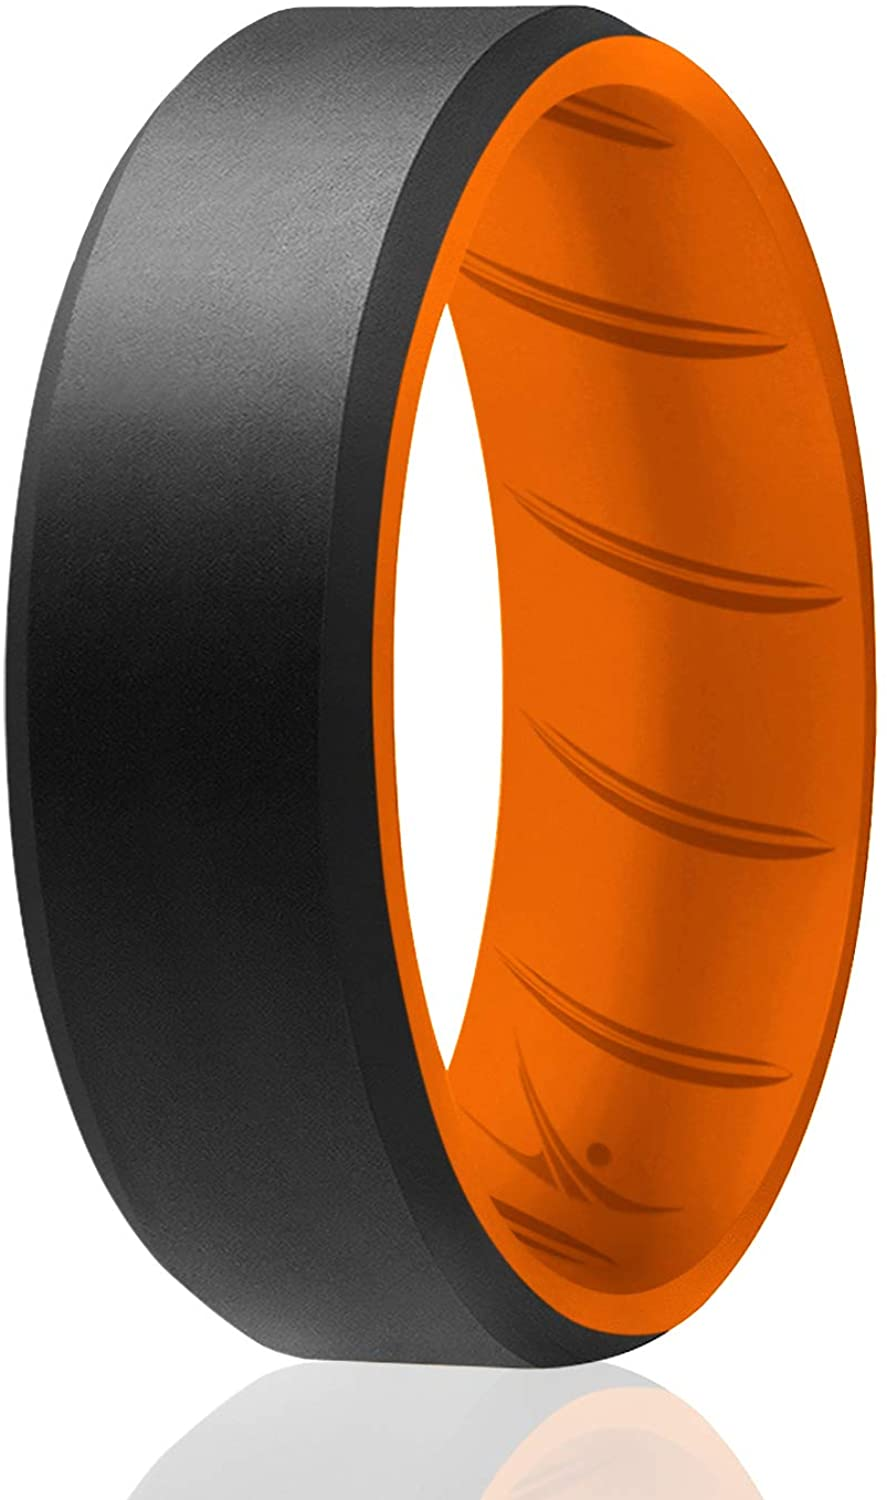 ROQ Silicone Wedding Rings for Men - Breathable Multipacks of 1/4/6 Mens Silicone Rubber Bands with Comfort Fit Airflow Design - 8mm Beveled